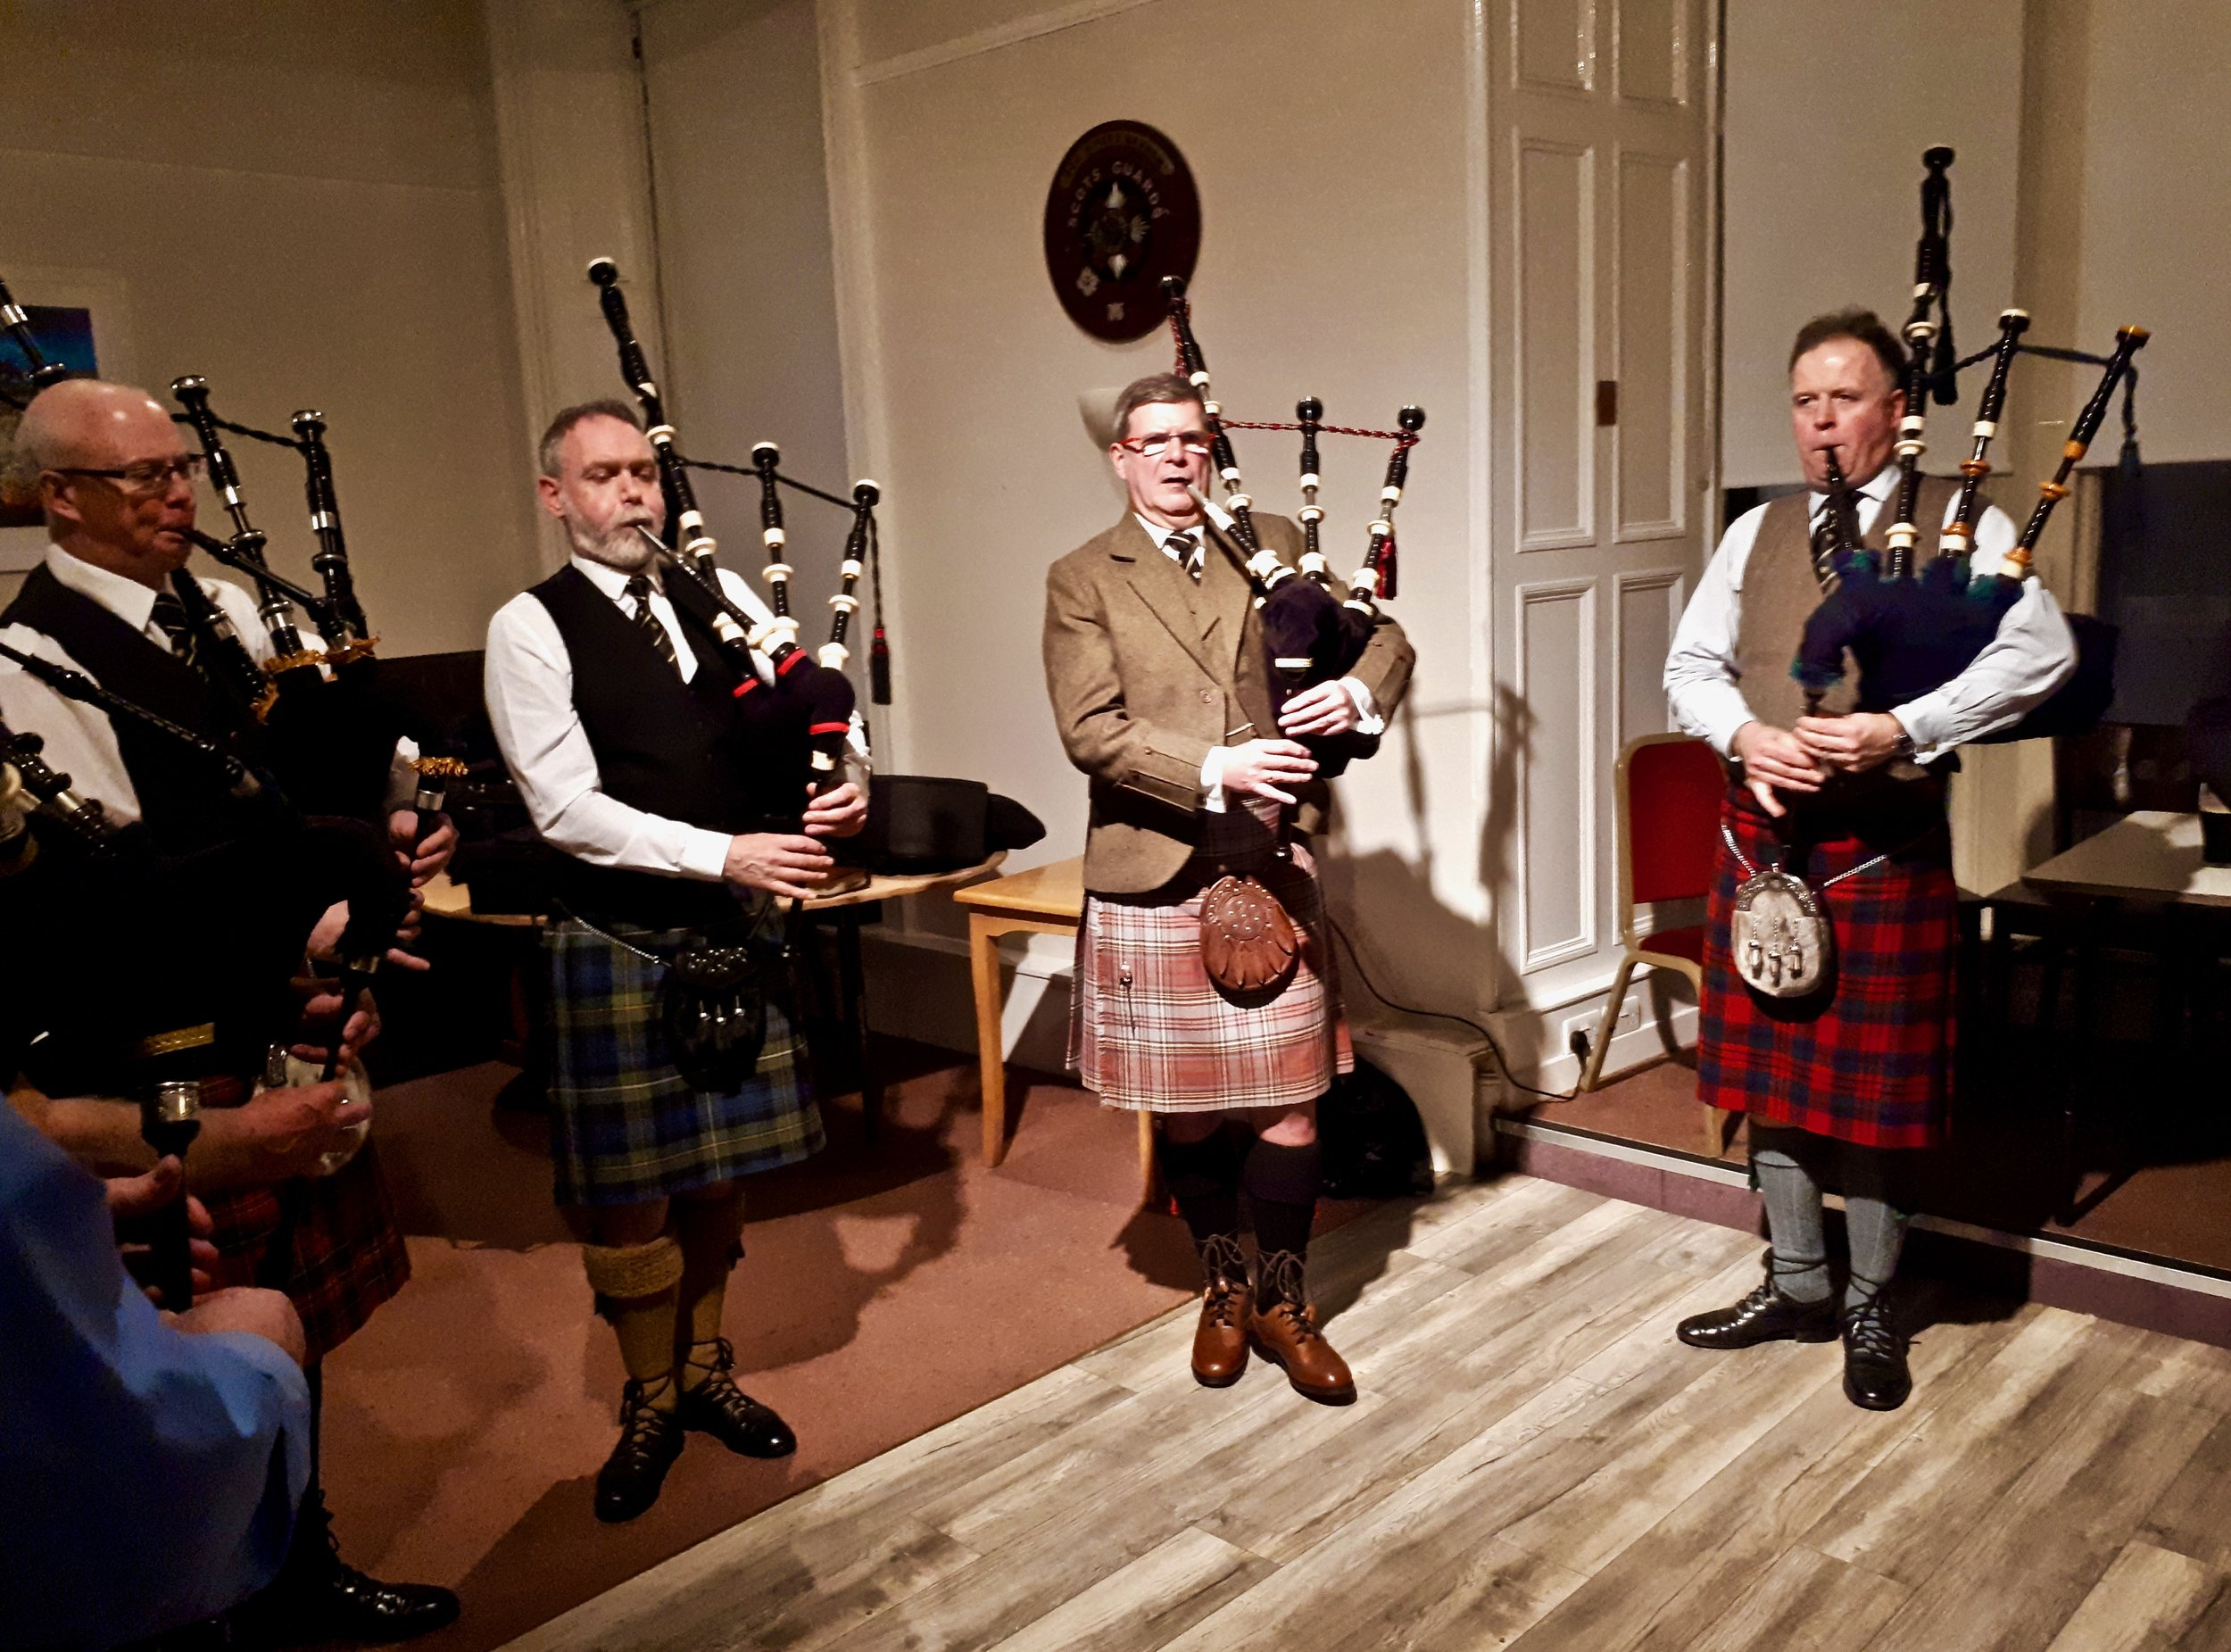 The Eagle Pipers' Society Edinburgh